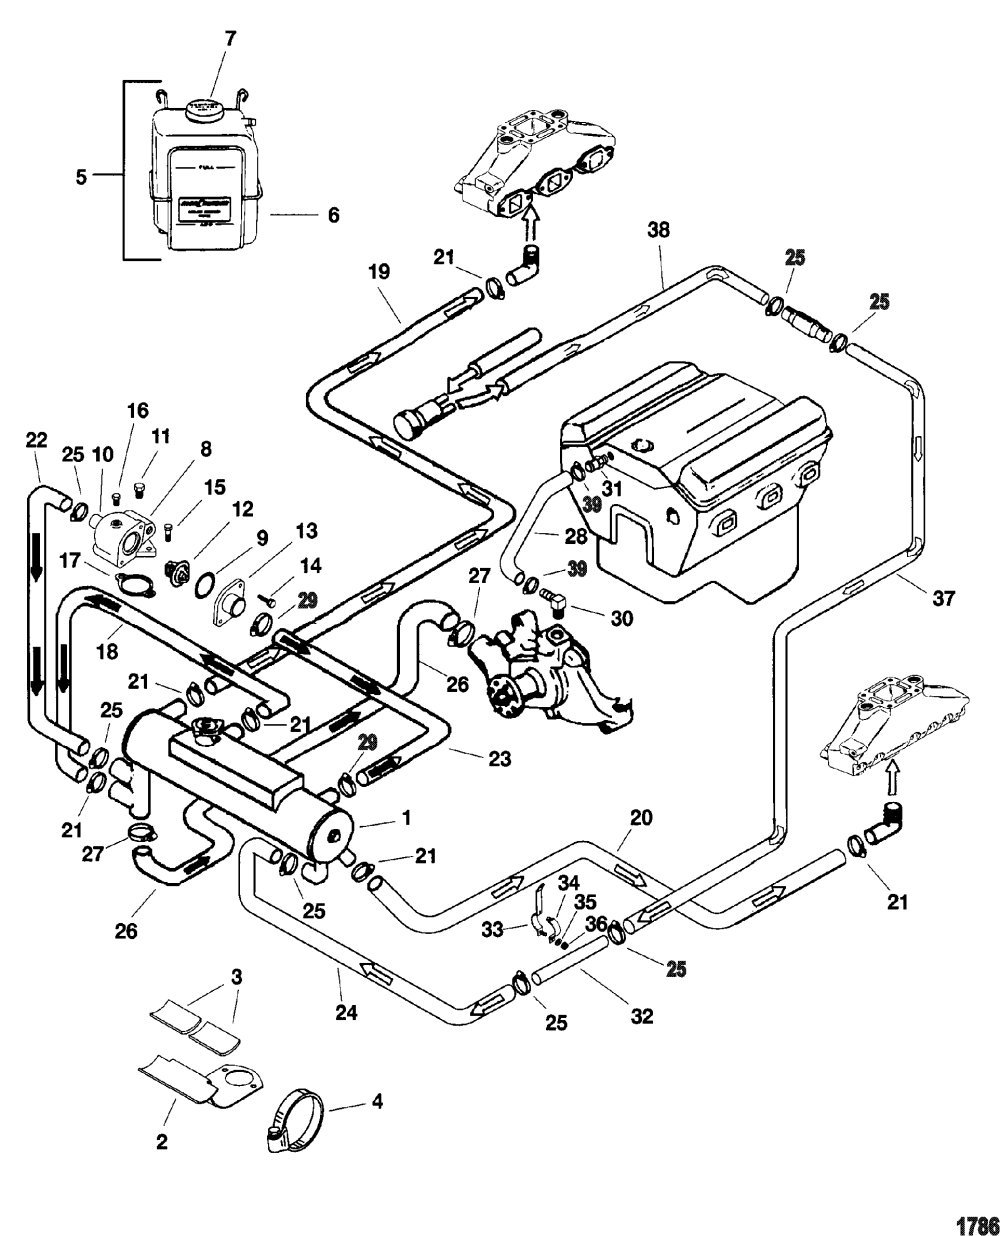 medium resolution of closed cooling system for mercruiser 4 3l efi alpha bravo 2001 chevy suburban parts diagram 2005 chevy suburban intake diagram